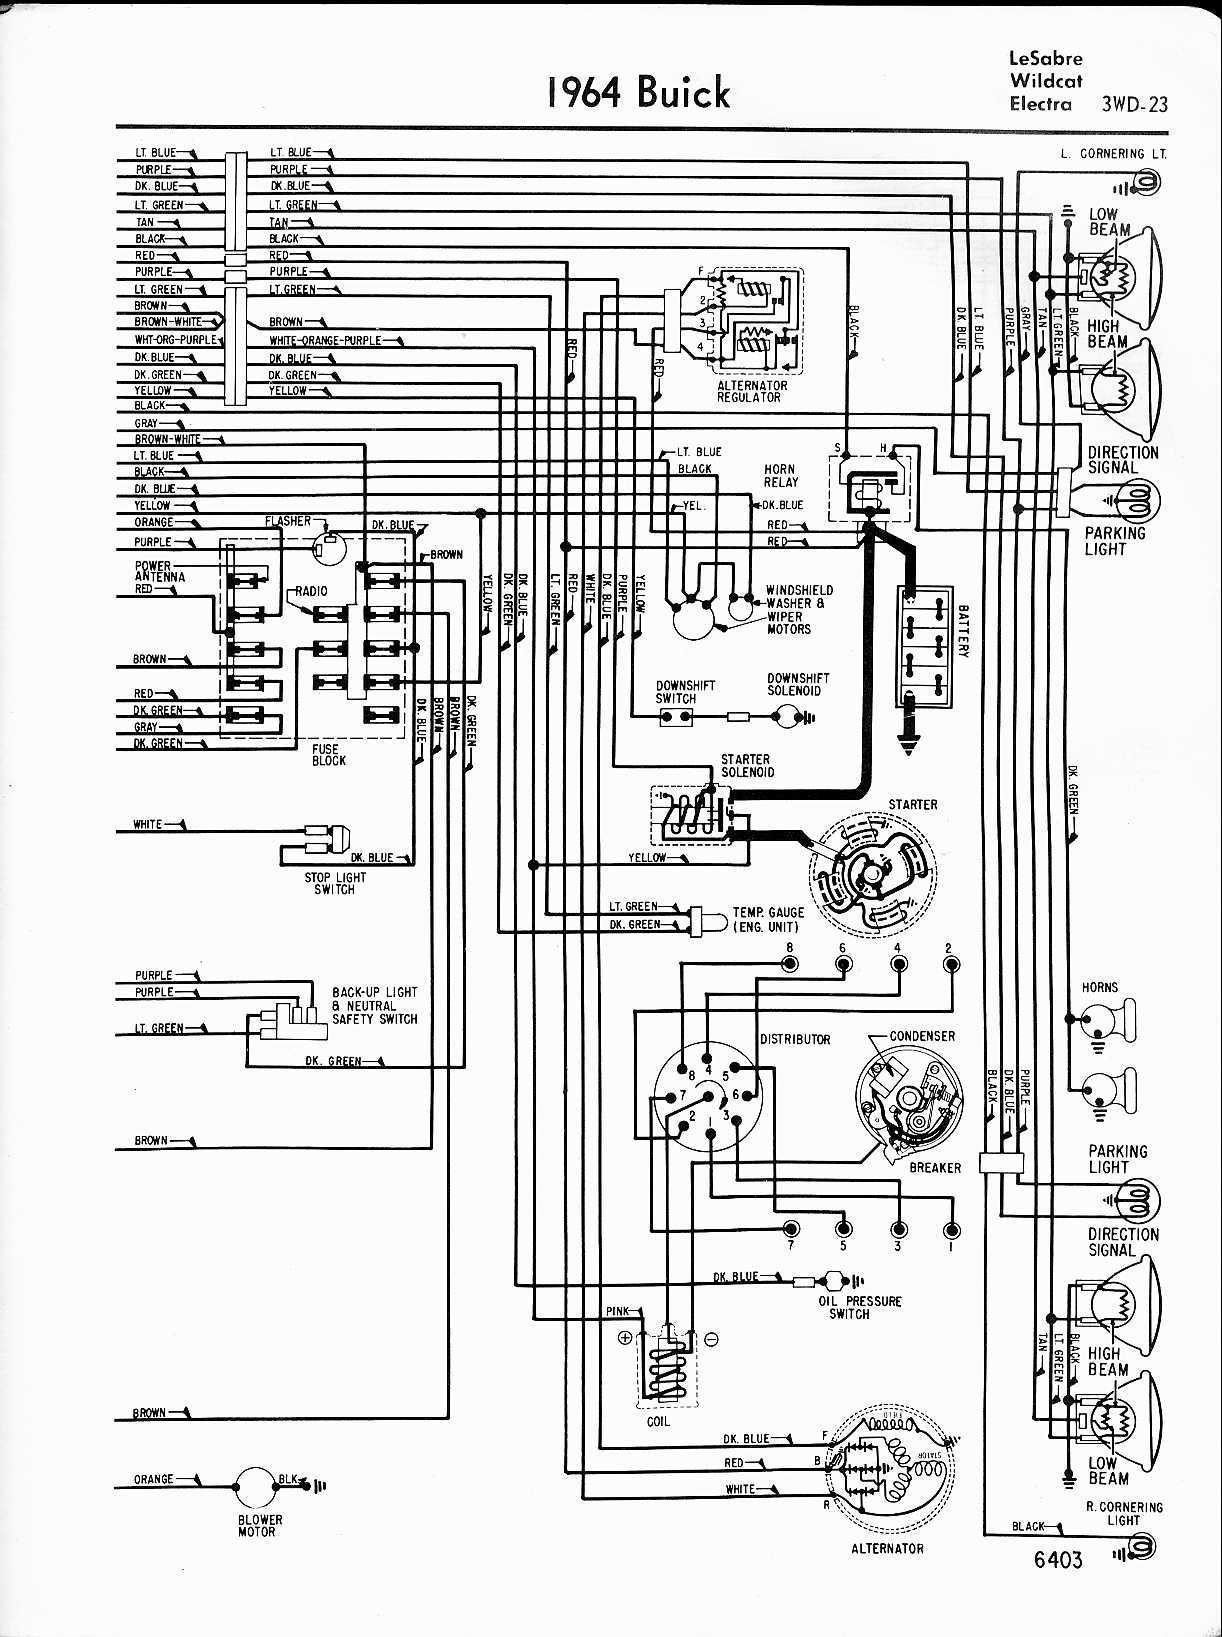 2007 Buick Rainier Wiring Diagram Opinions About Fuse Box For 2004 Gmc Envoy 2006 Engine Worksheet And U2022 Rh Bookinc Co Chevrolet Trailblazer